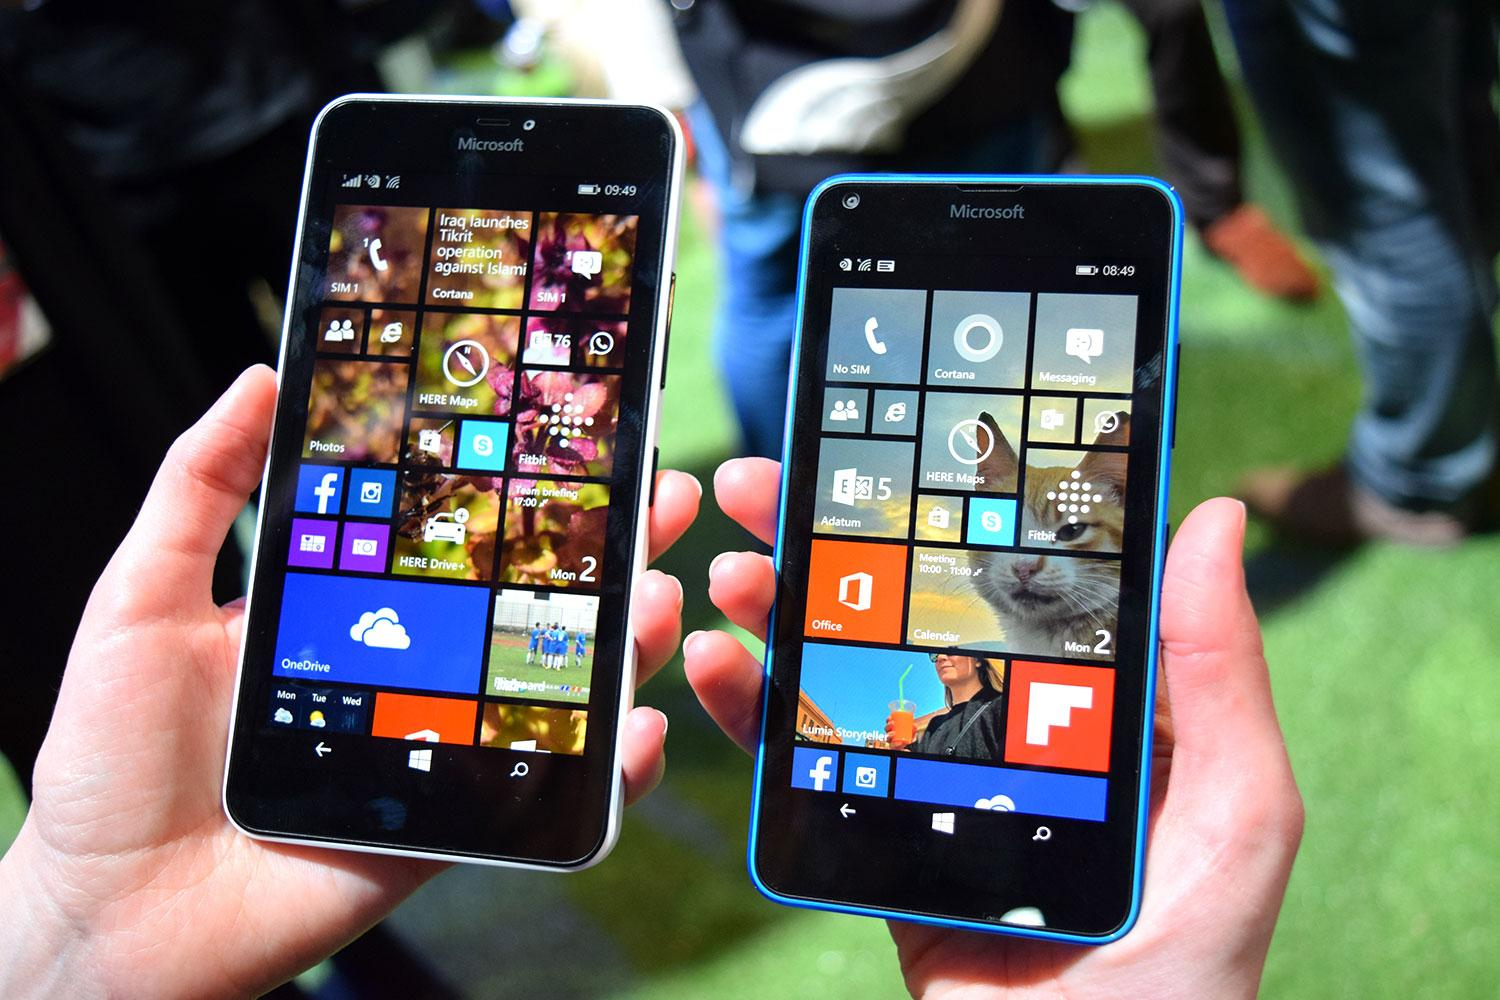 Local microsoft lumia 640 lte price in pakistan you have JavaScript